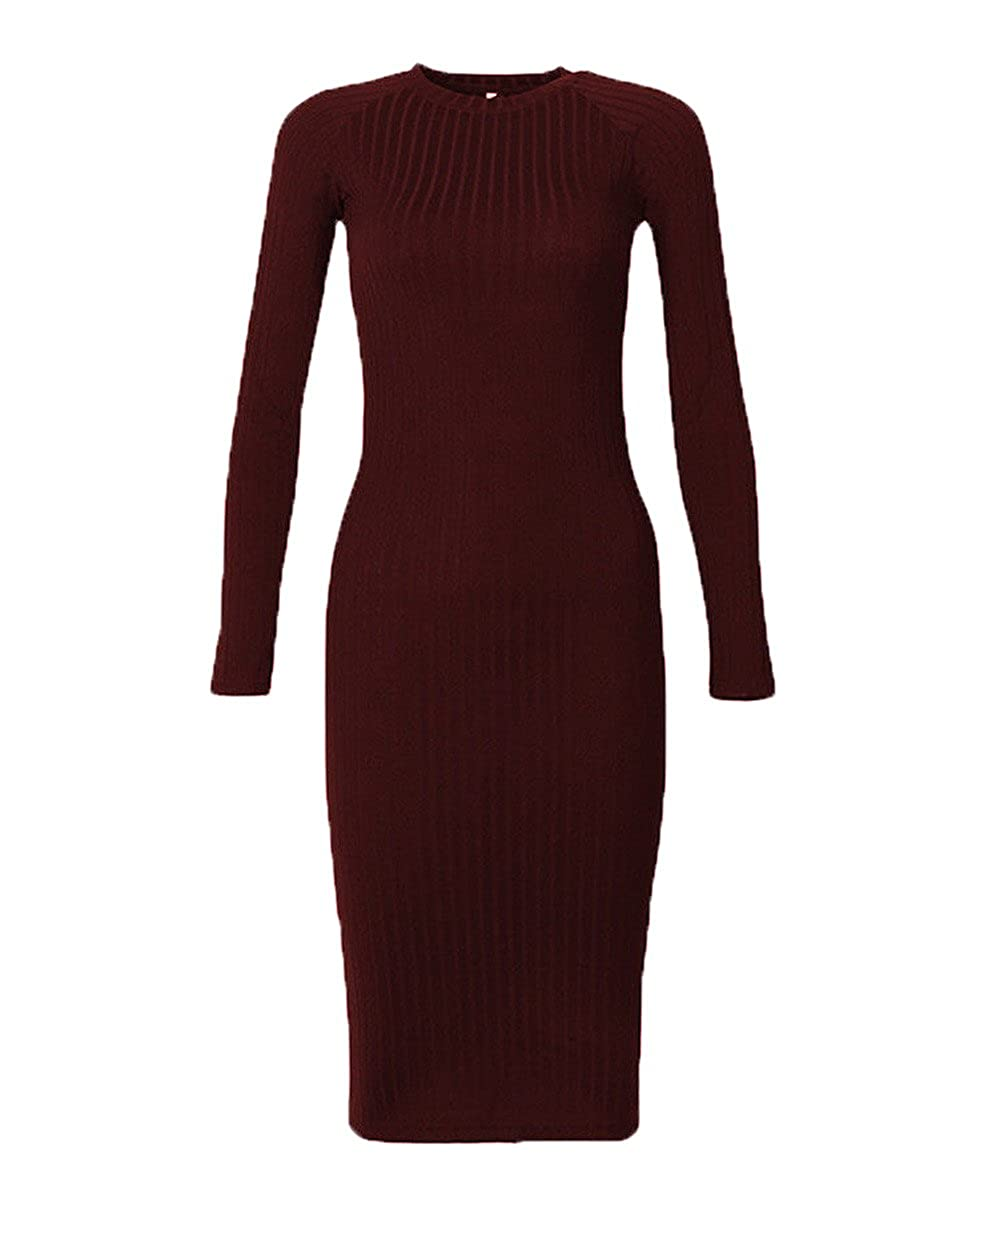 6c6c203c9a9 Women s Solid Long Sleeve Bodycon Ribbed Knitted Casual Turtleneck Sweater  Dress Basic Dress For Woman Teen Girls at Amazon Women s Clothing store